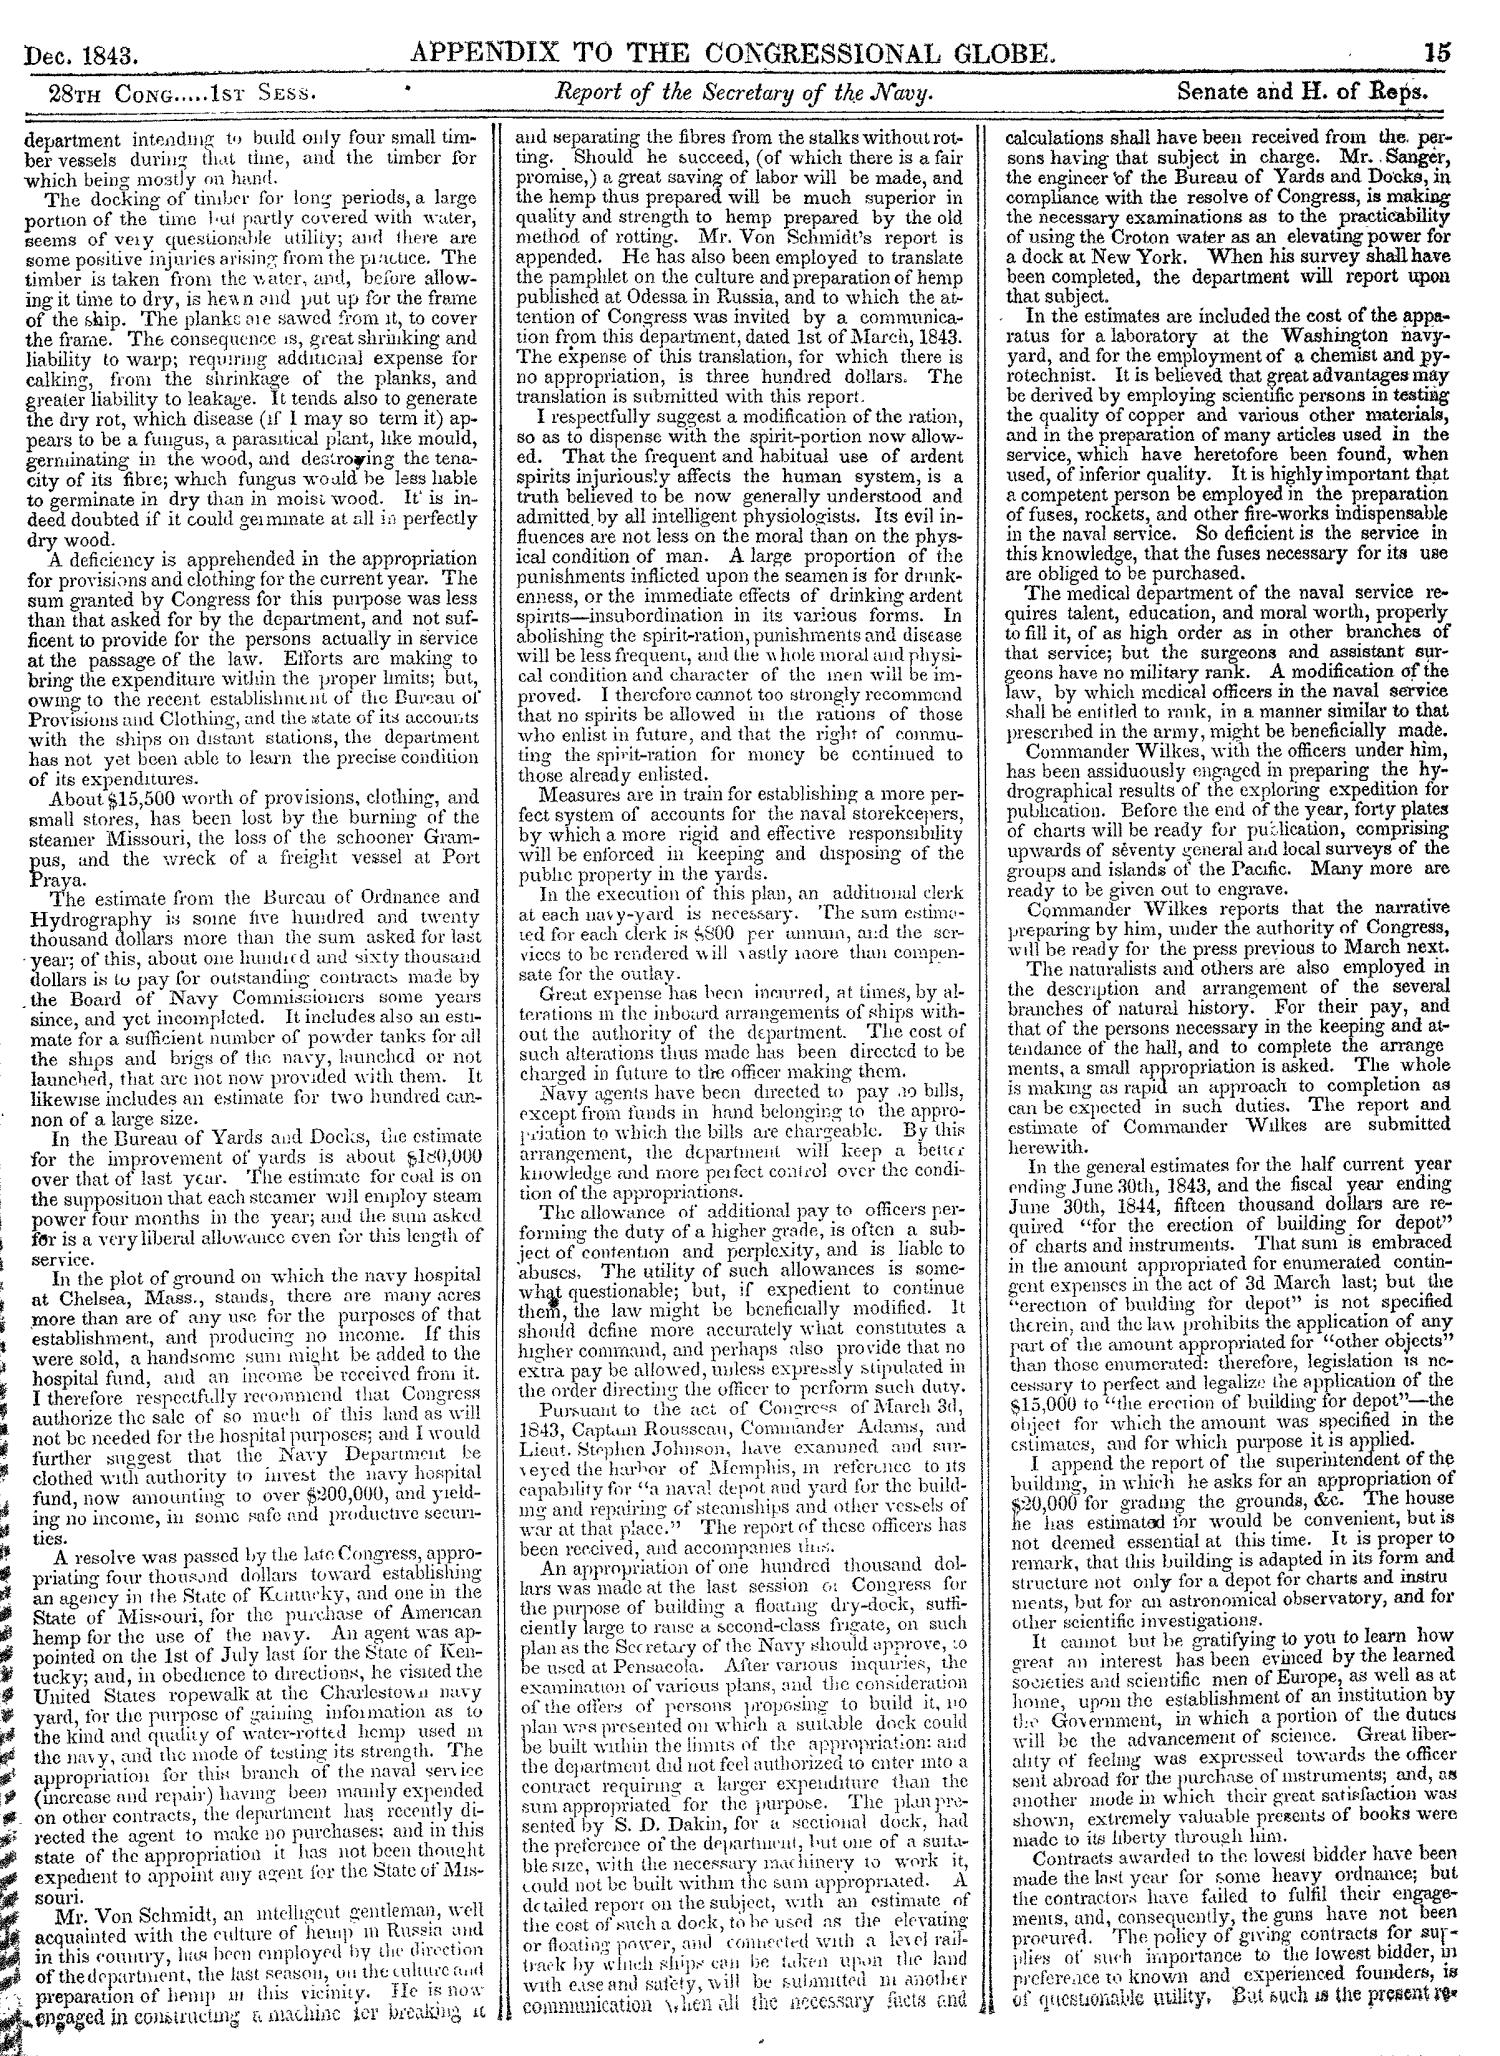 The Congressional Globe, Volume 13, Part 2: Twenty-Eighth Congress, First Session                                                                                                      15